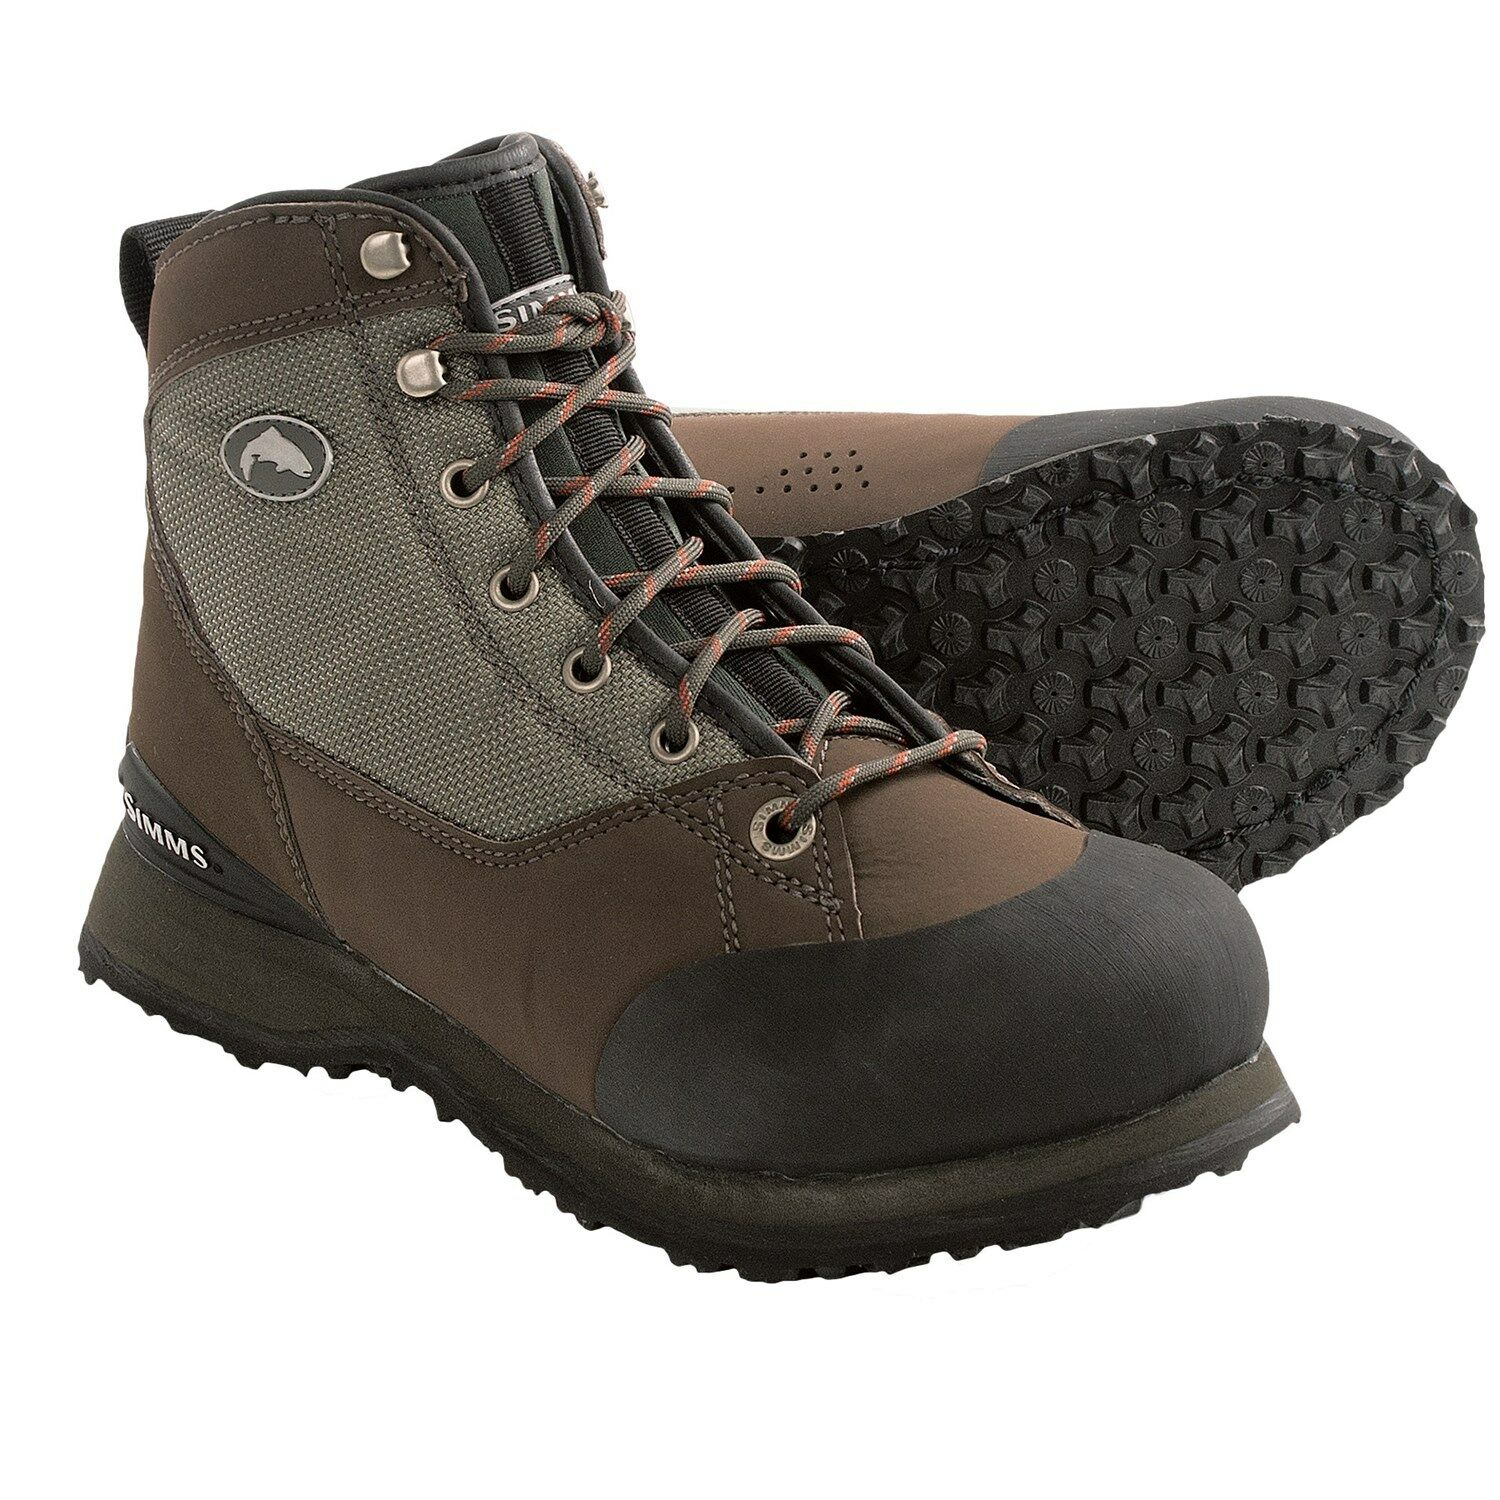 Simms Women's Headwaters Streamtread  Boot  Lt Brown  NEW Size 5  Closeout  the newest brands outlet online